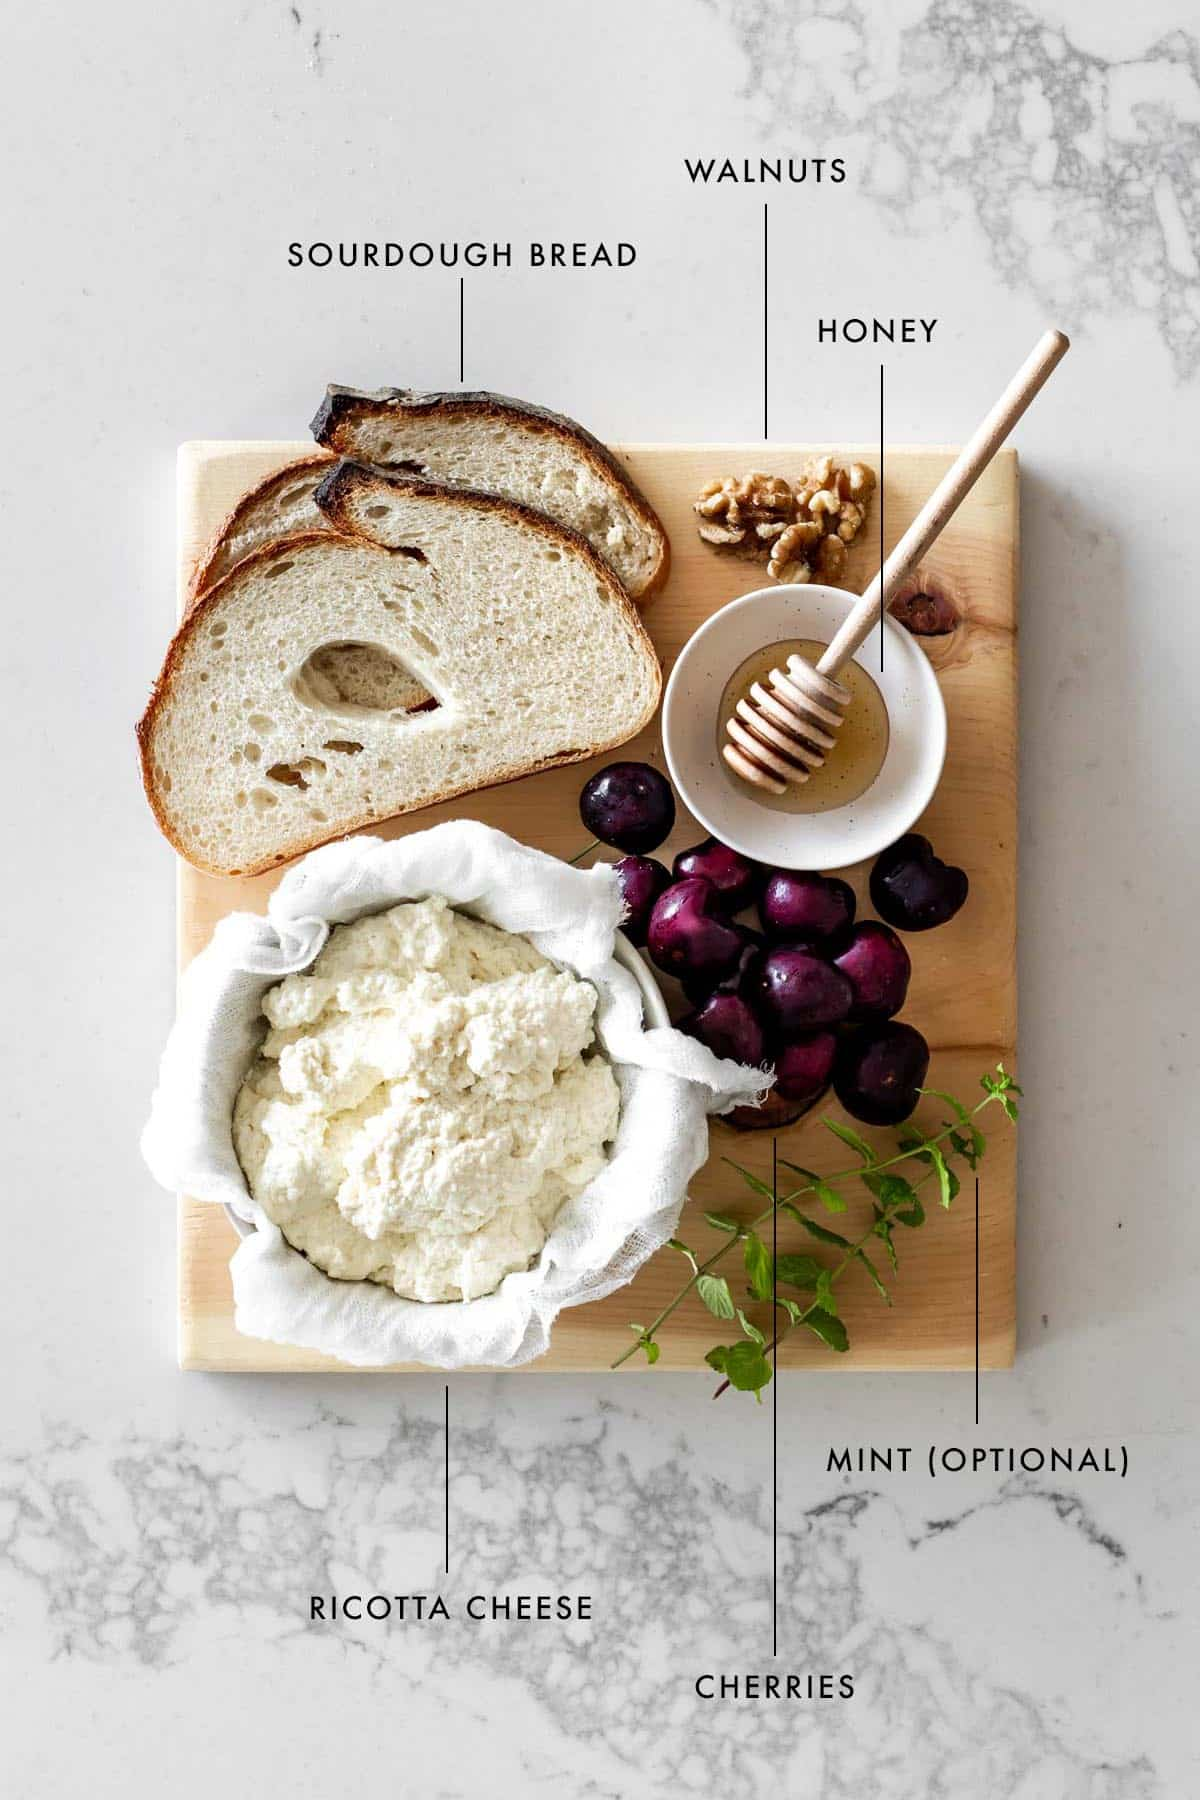 Ingredients to make Homemade Ricotta Toast with Cherries